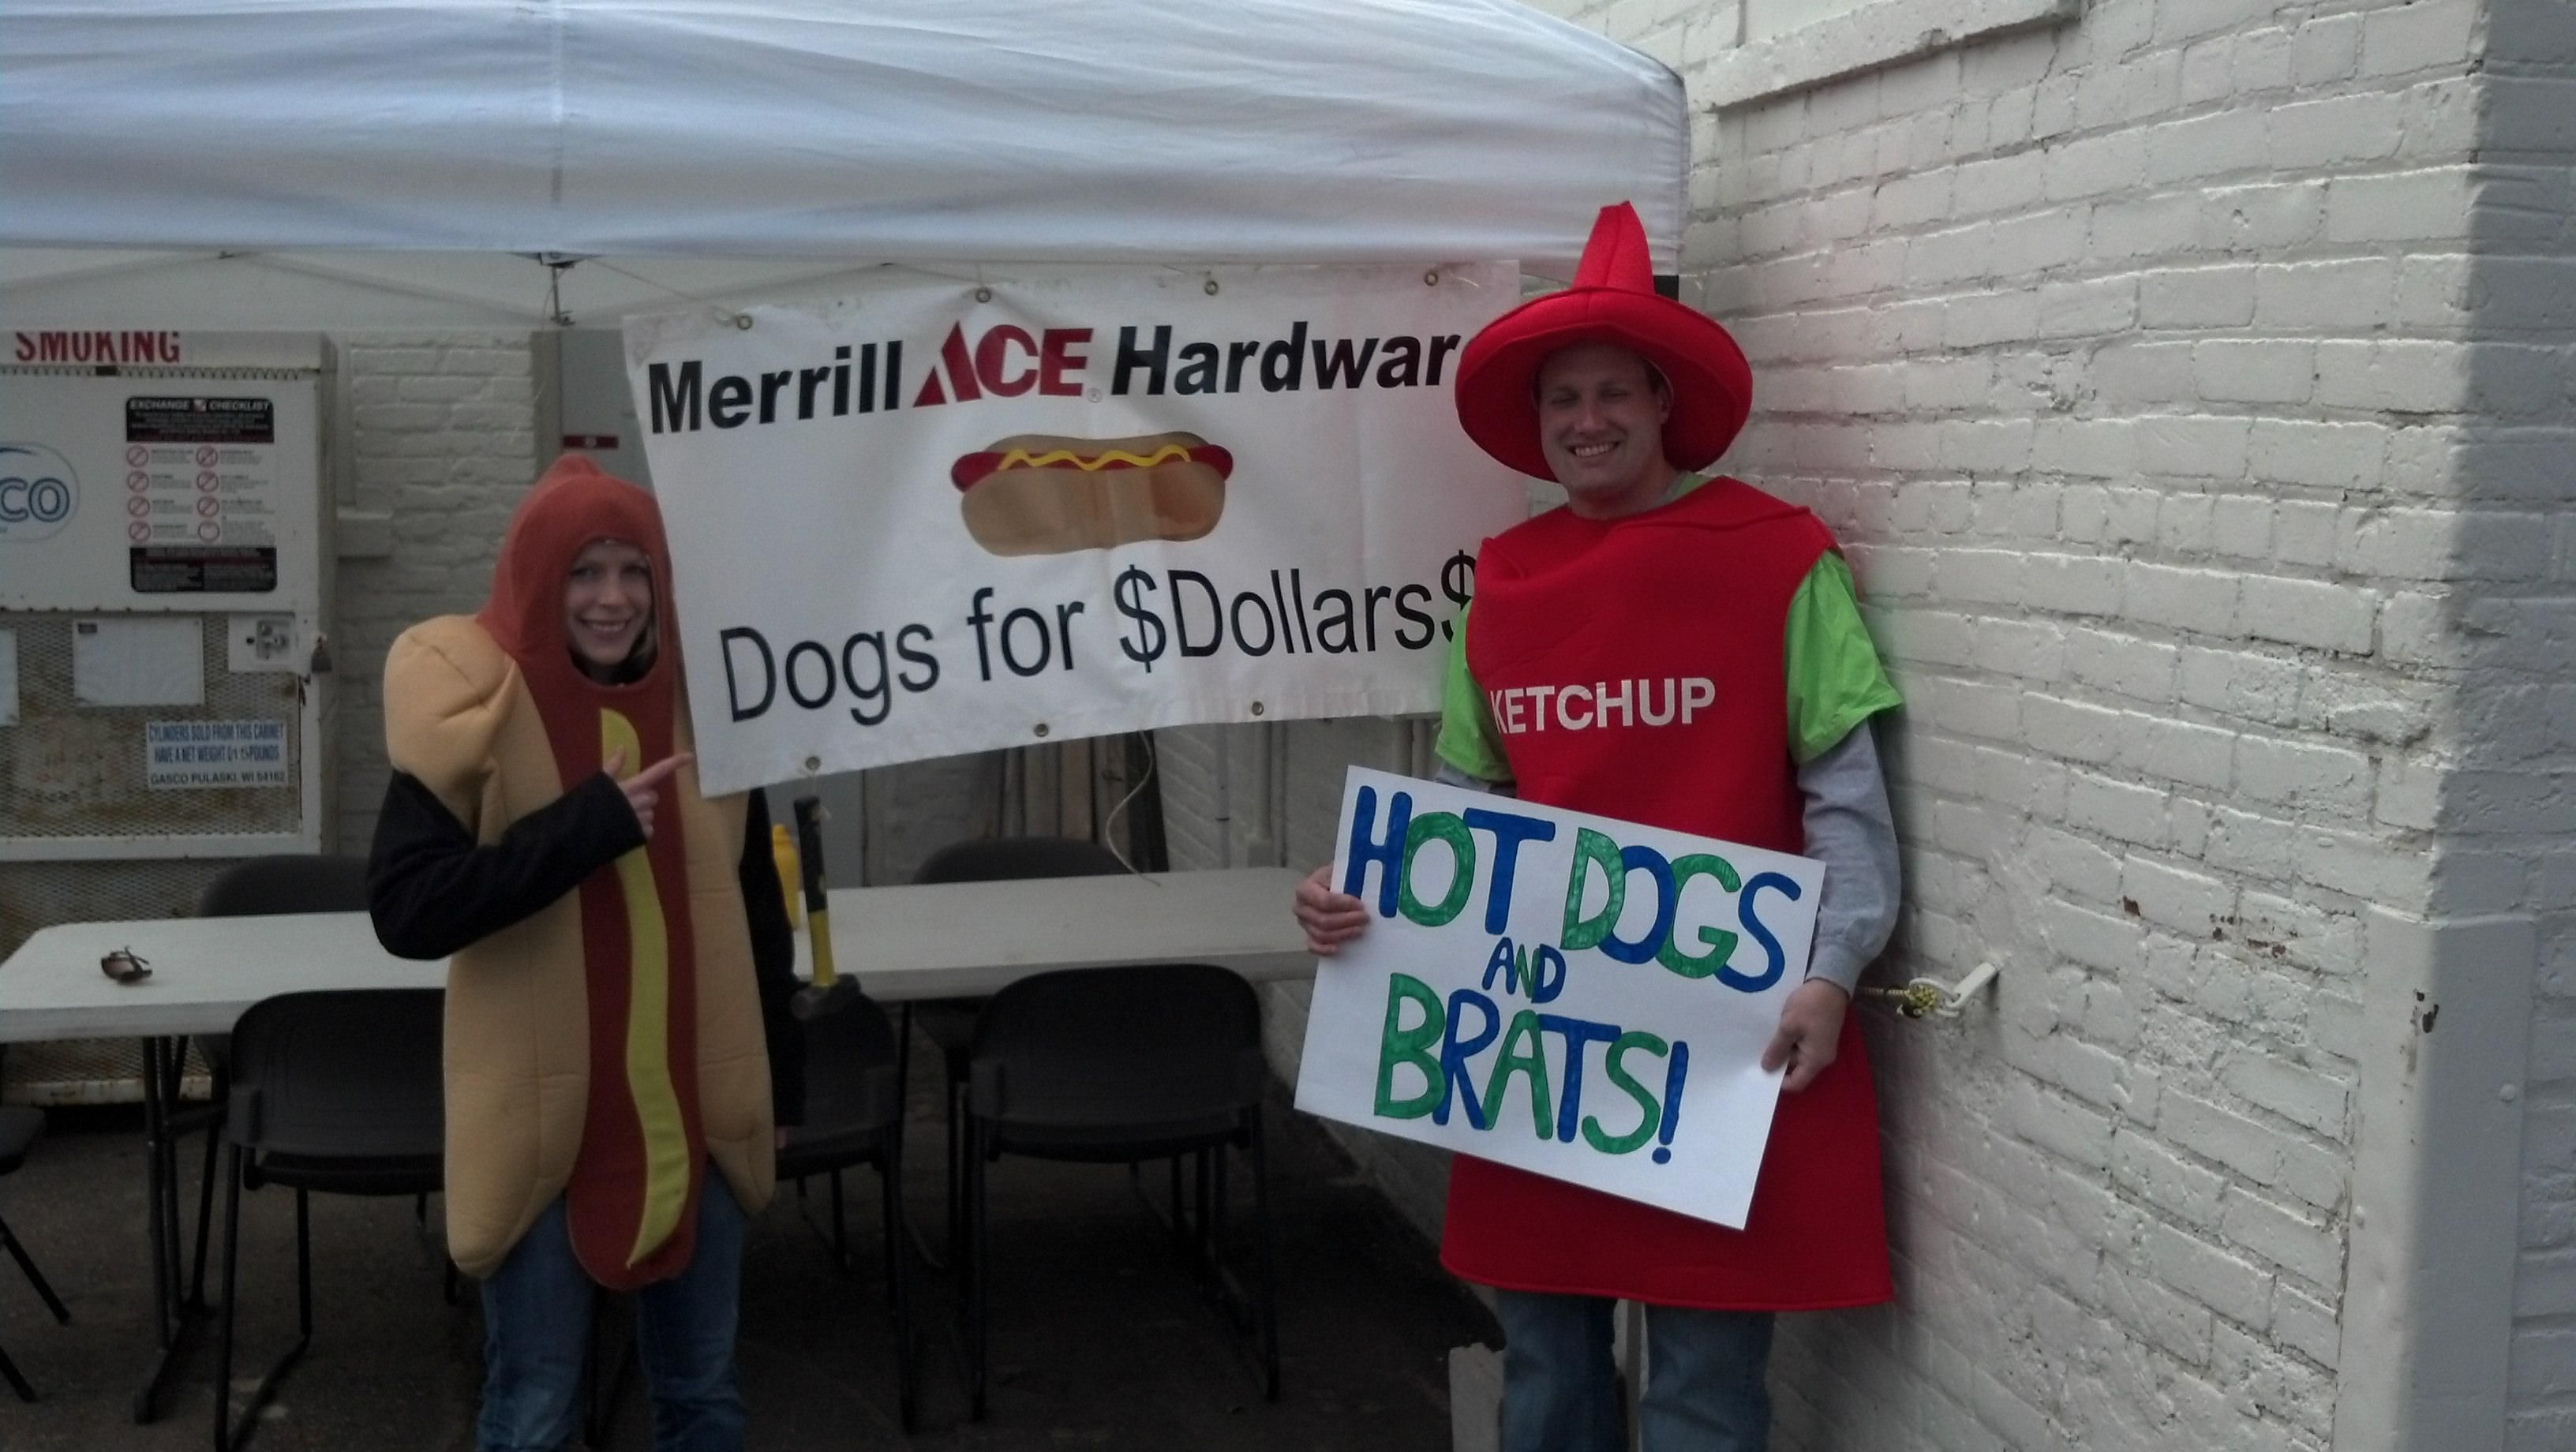 habitat for humanity was selling dogs on Saturday as a fund raiser. Call if you and your organization would like a weekend. We give you the tables, the grill and the gas. You provide the dogs (and whatever else).